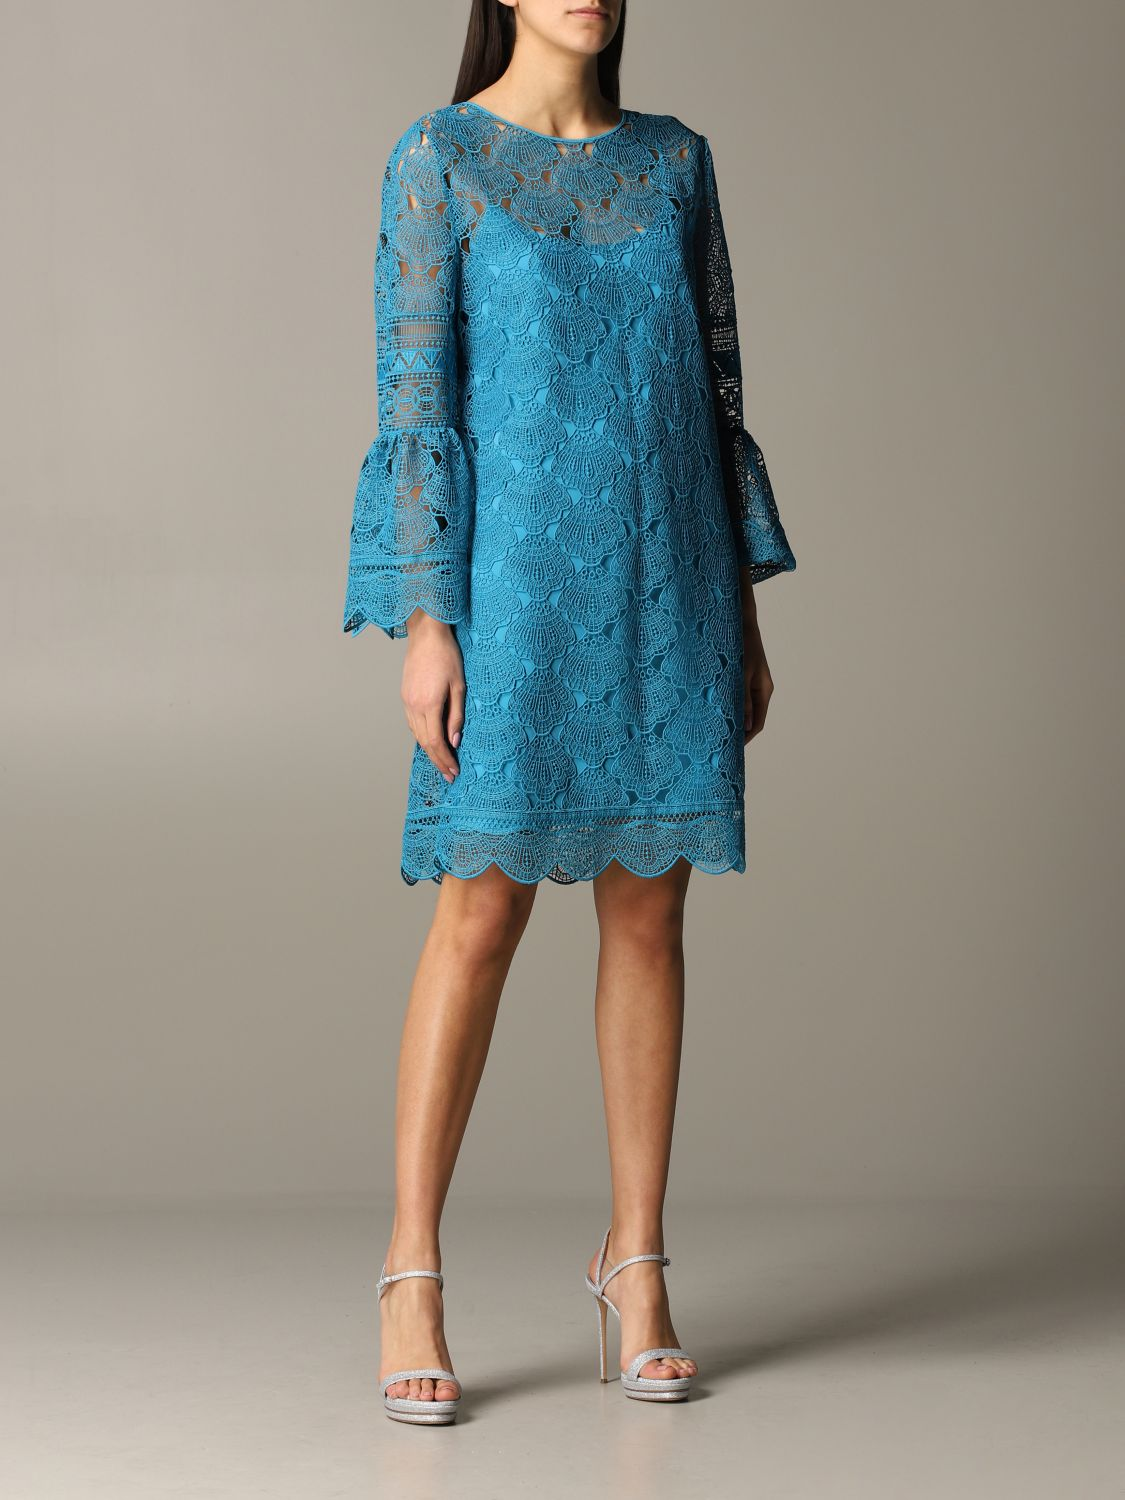 Dress Alberta Ferretti: Dress women Alberta Ferretti gnawed blue 1